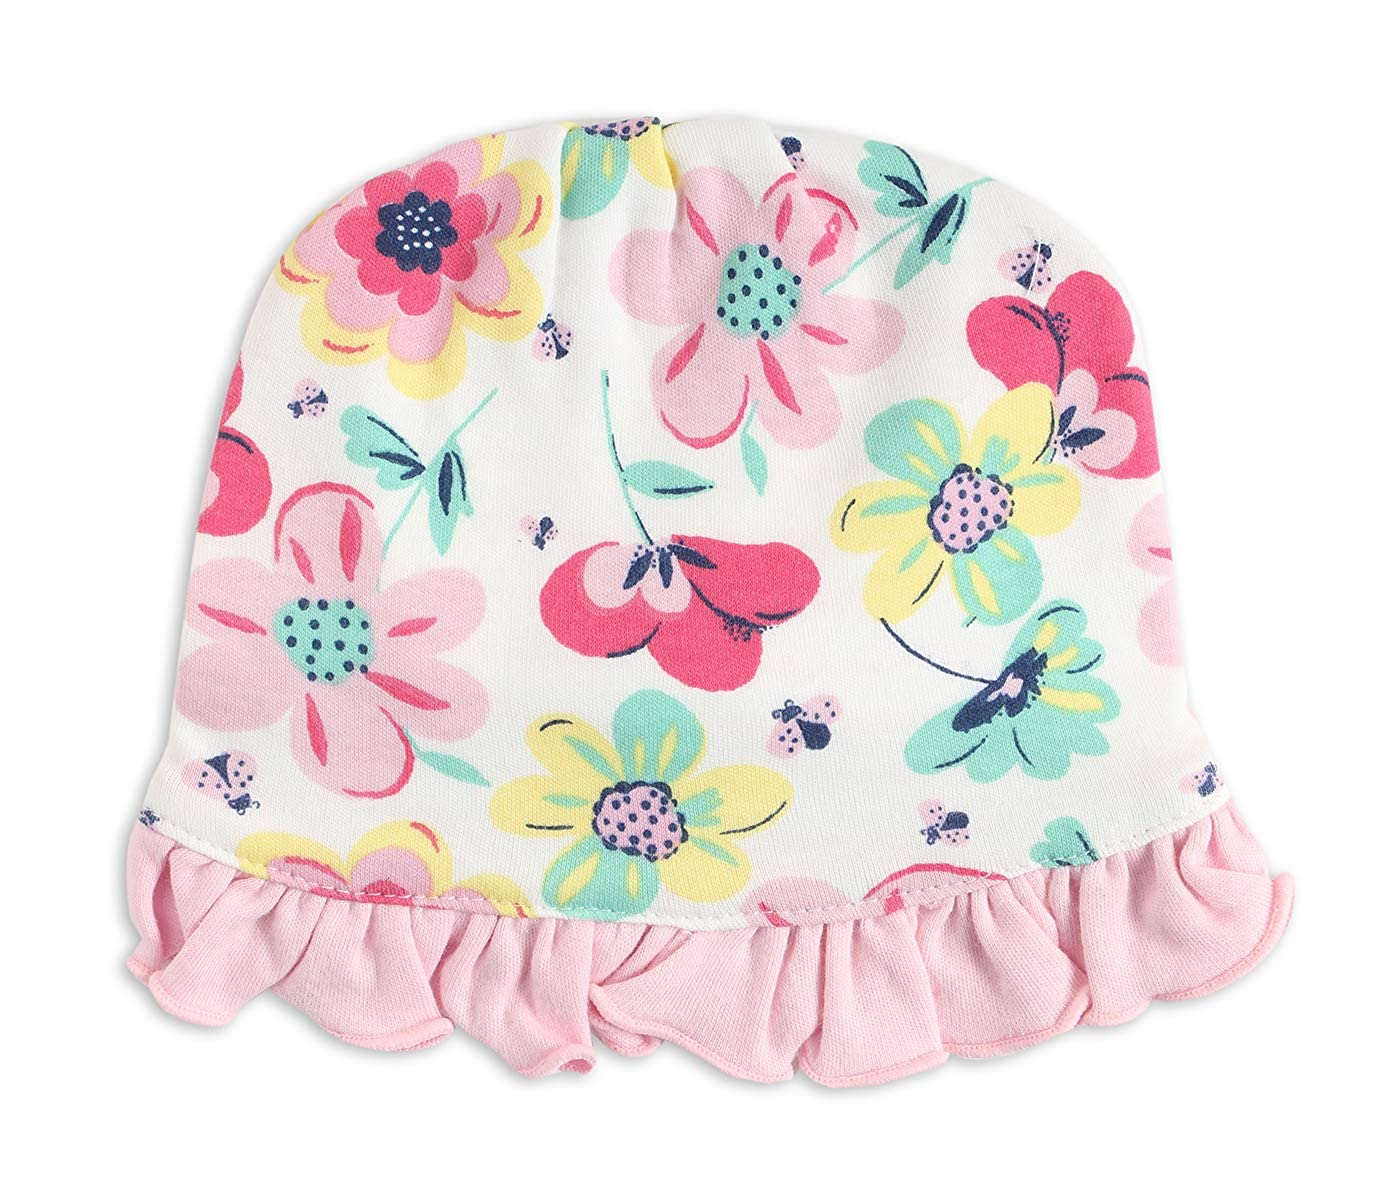 ad984e64724 BUMZEE 100% Cotton Cute Printed Reversible Round Cap for Toddler Infant New  Born Baby Girl Age 0-12 Months Multicolor (PEB2144)  Amazon.in  Clothing    ...